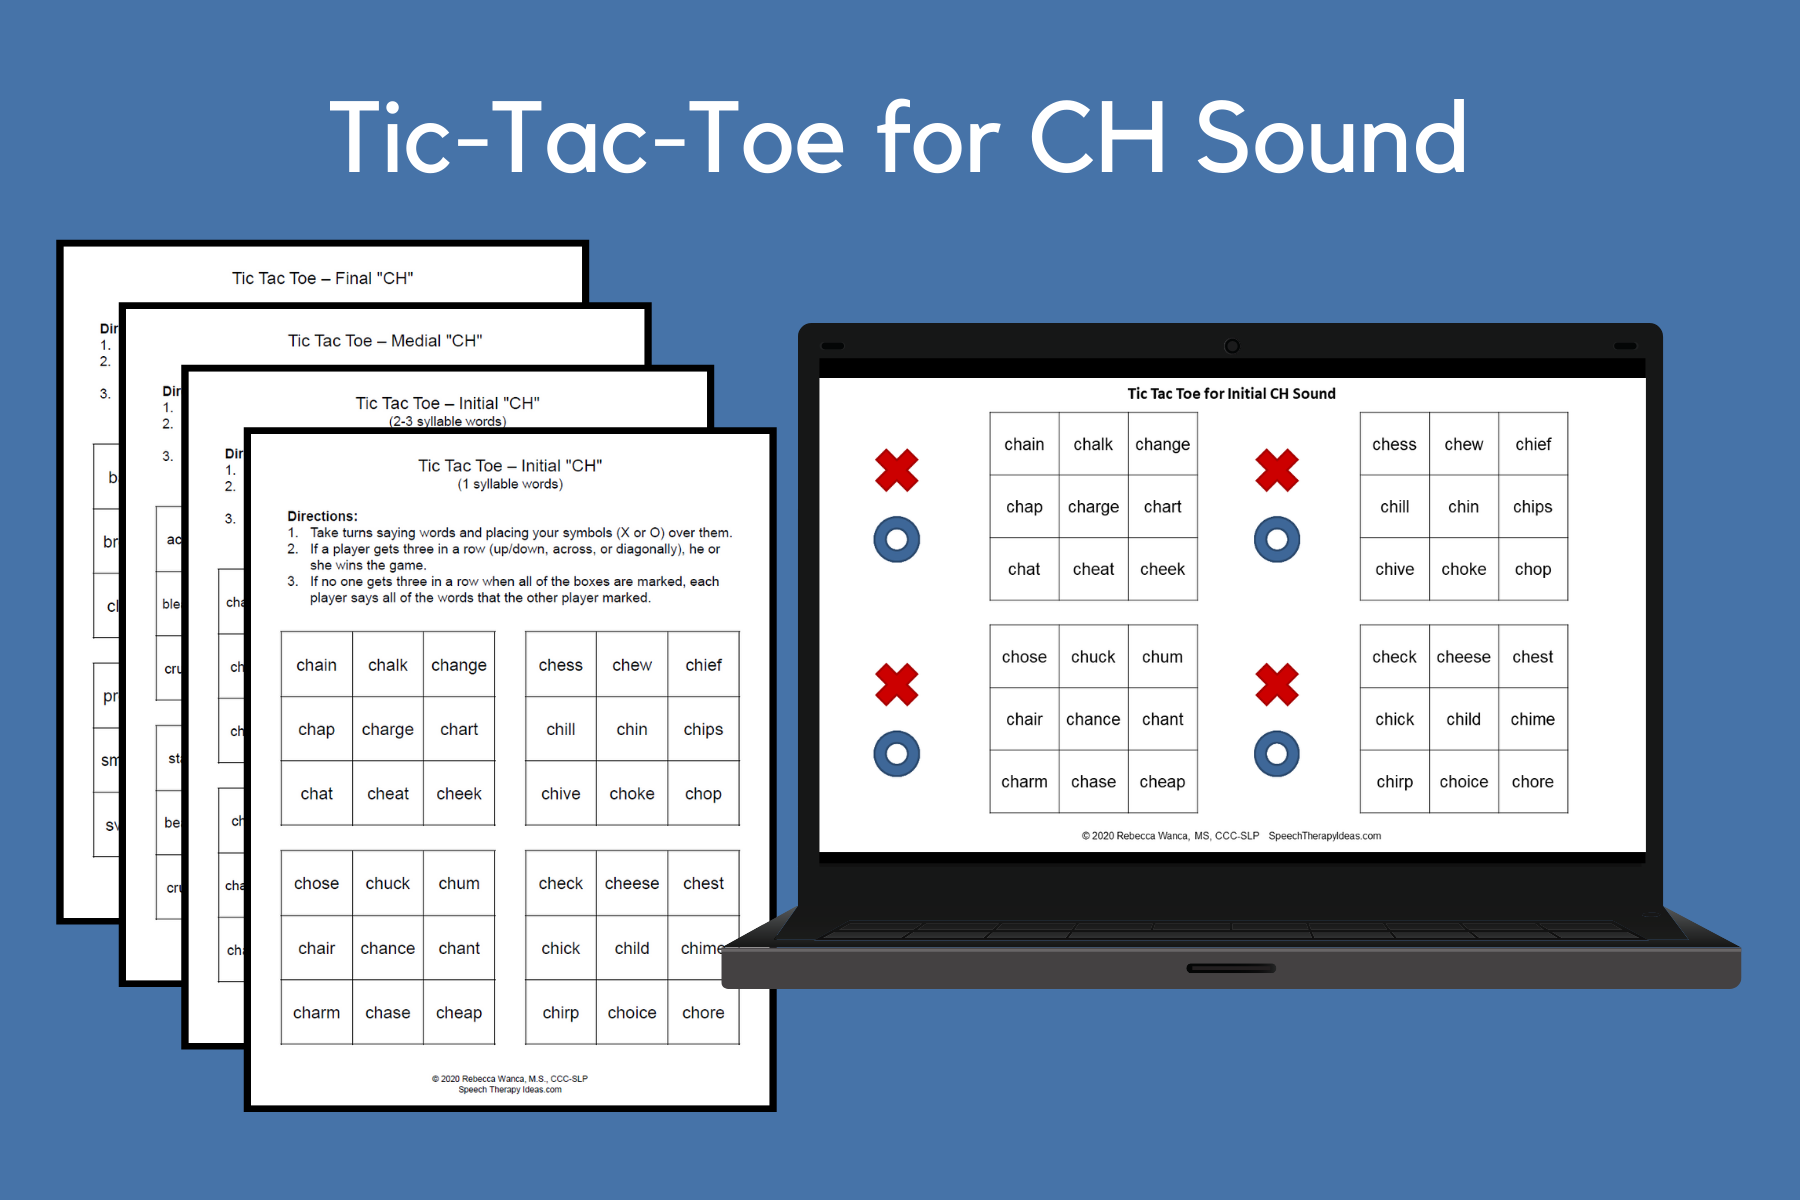 Tic-Tac-Toe Games For CH Sound